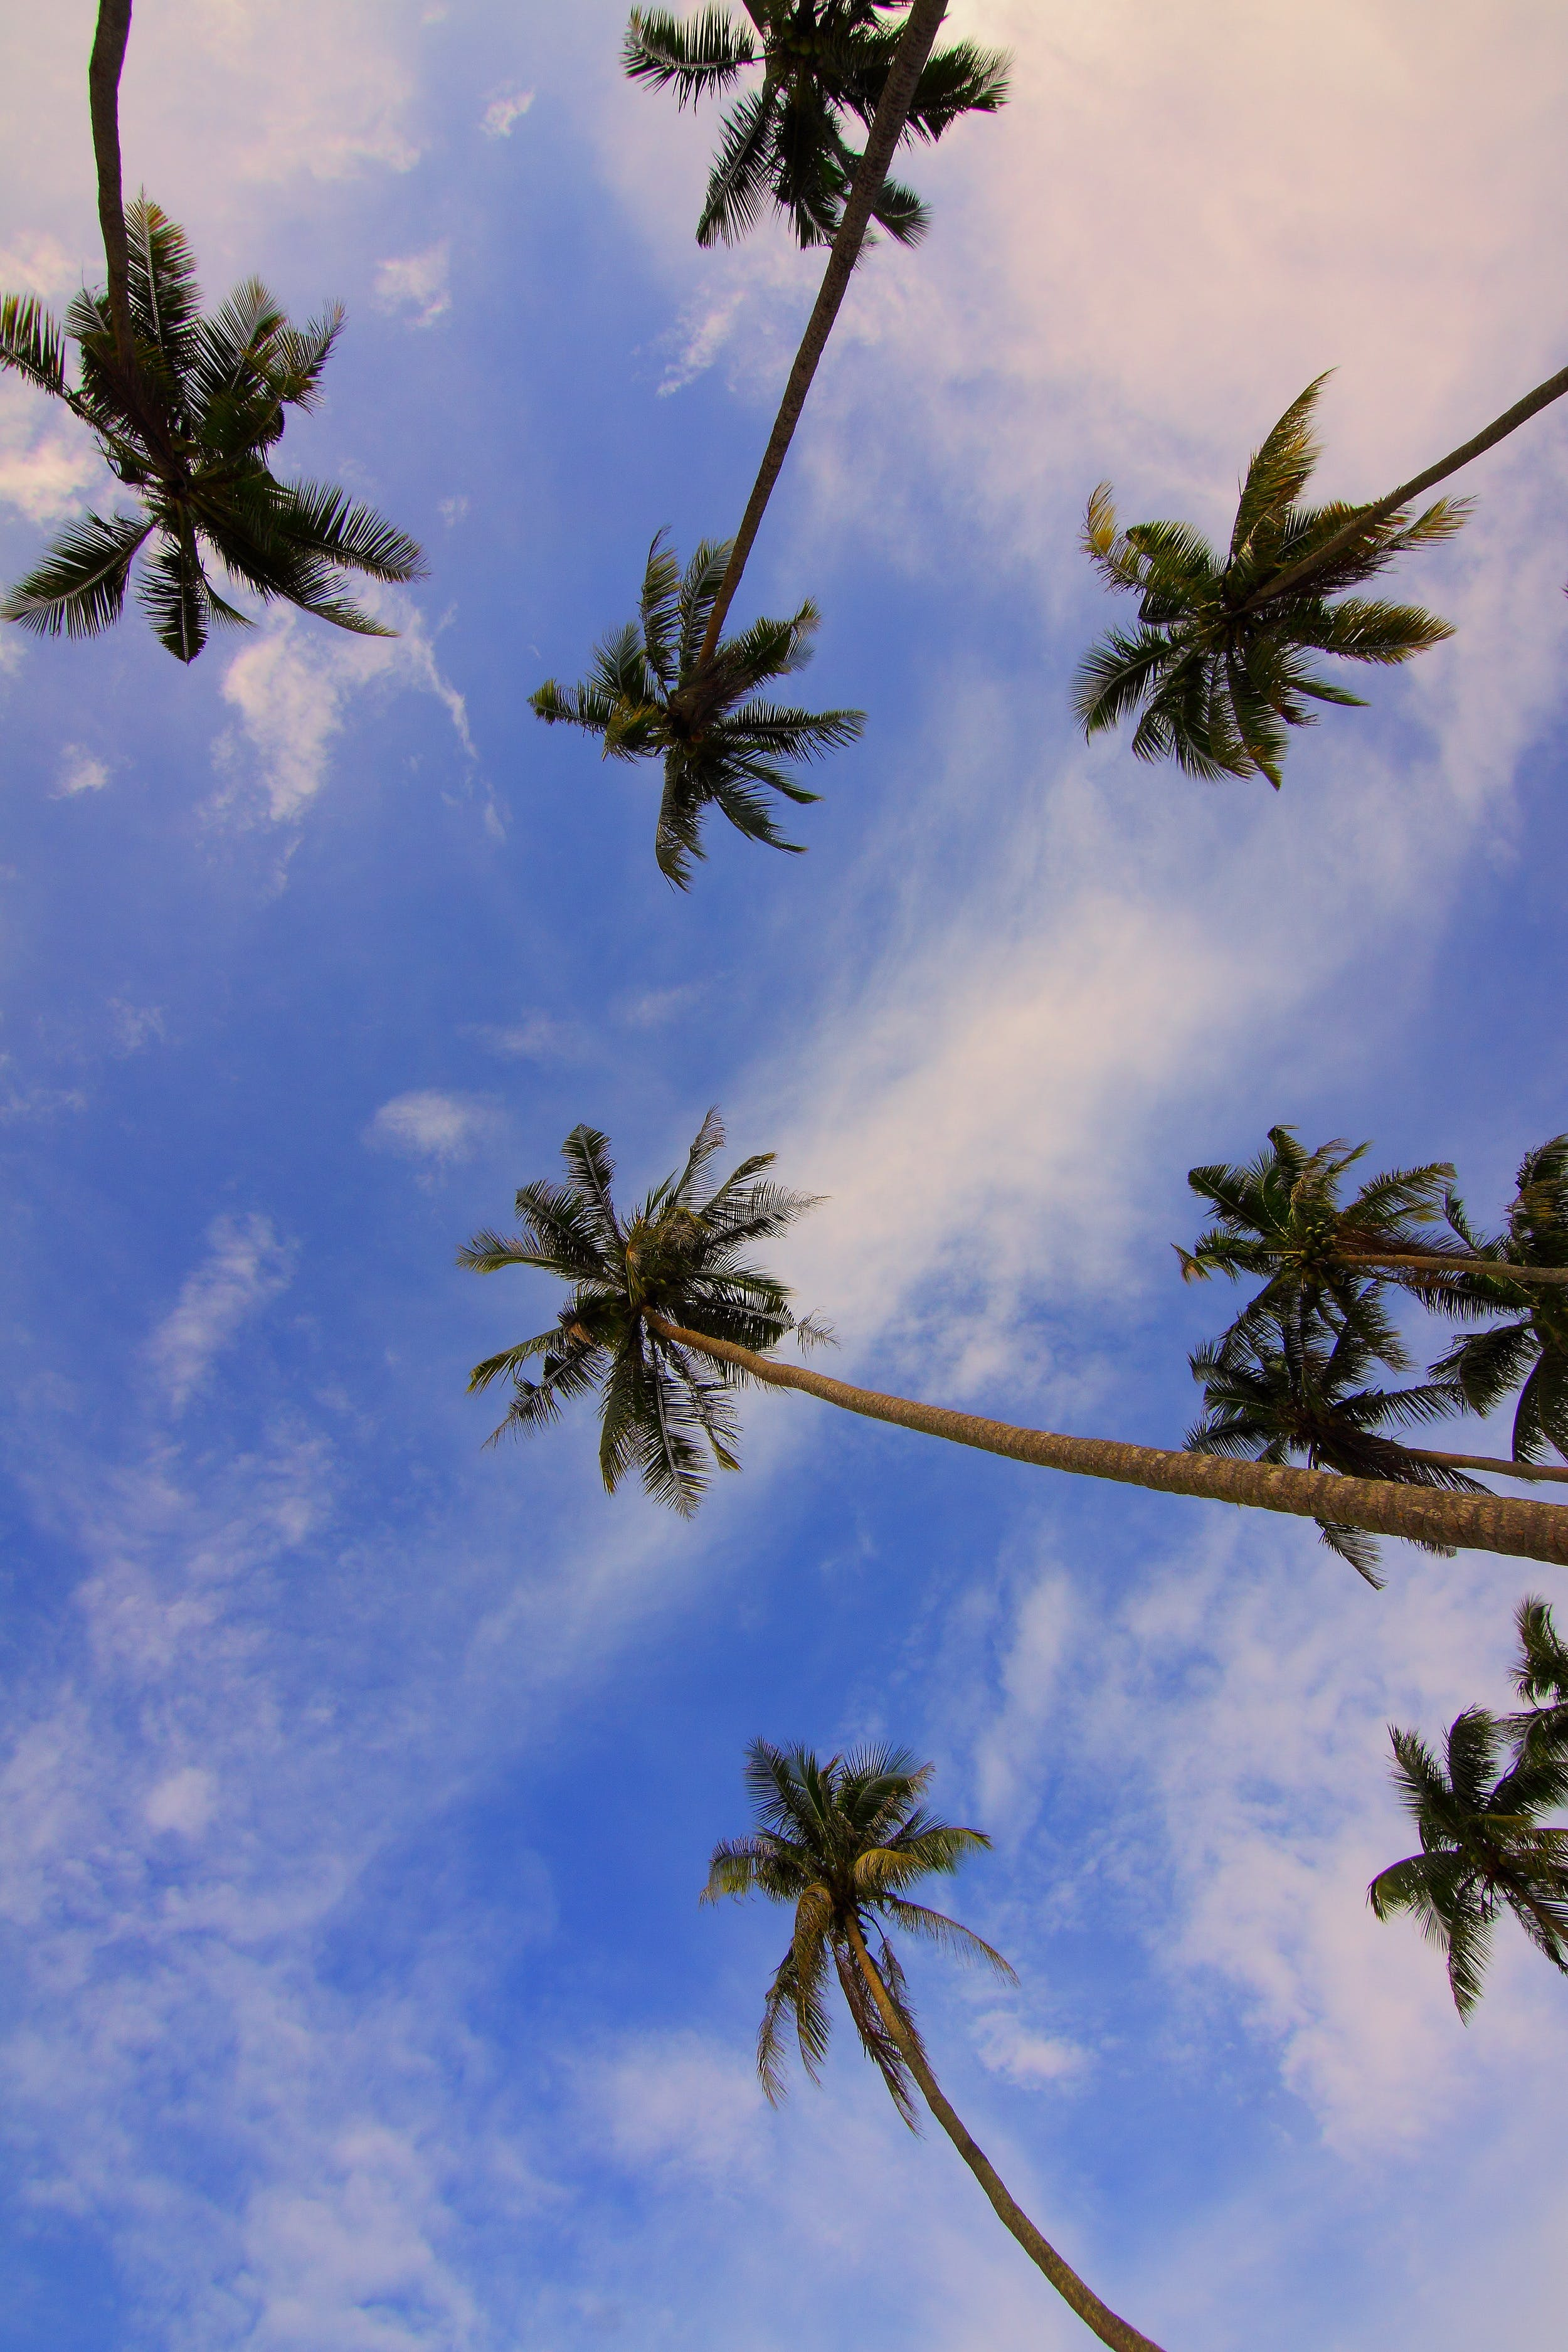 Bottom View of Palm Trees